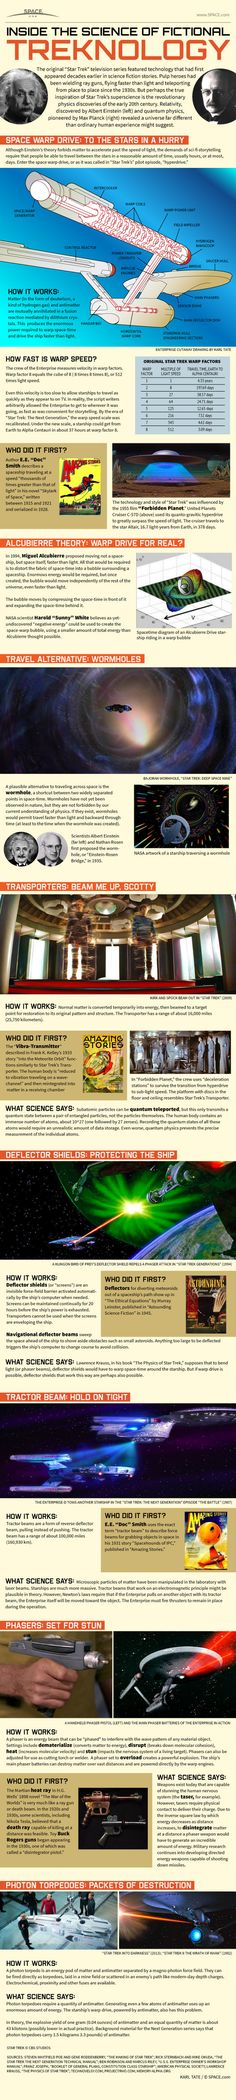 Find out how Star Treks fictional high technology works in this SPACE.com infographic.